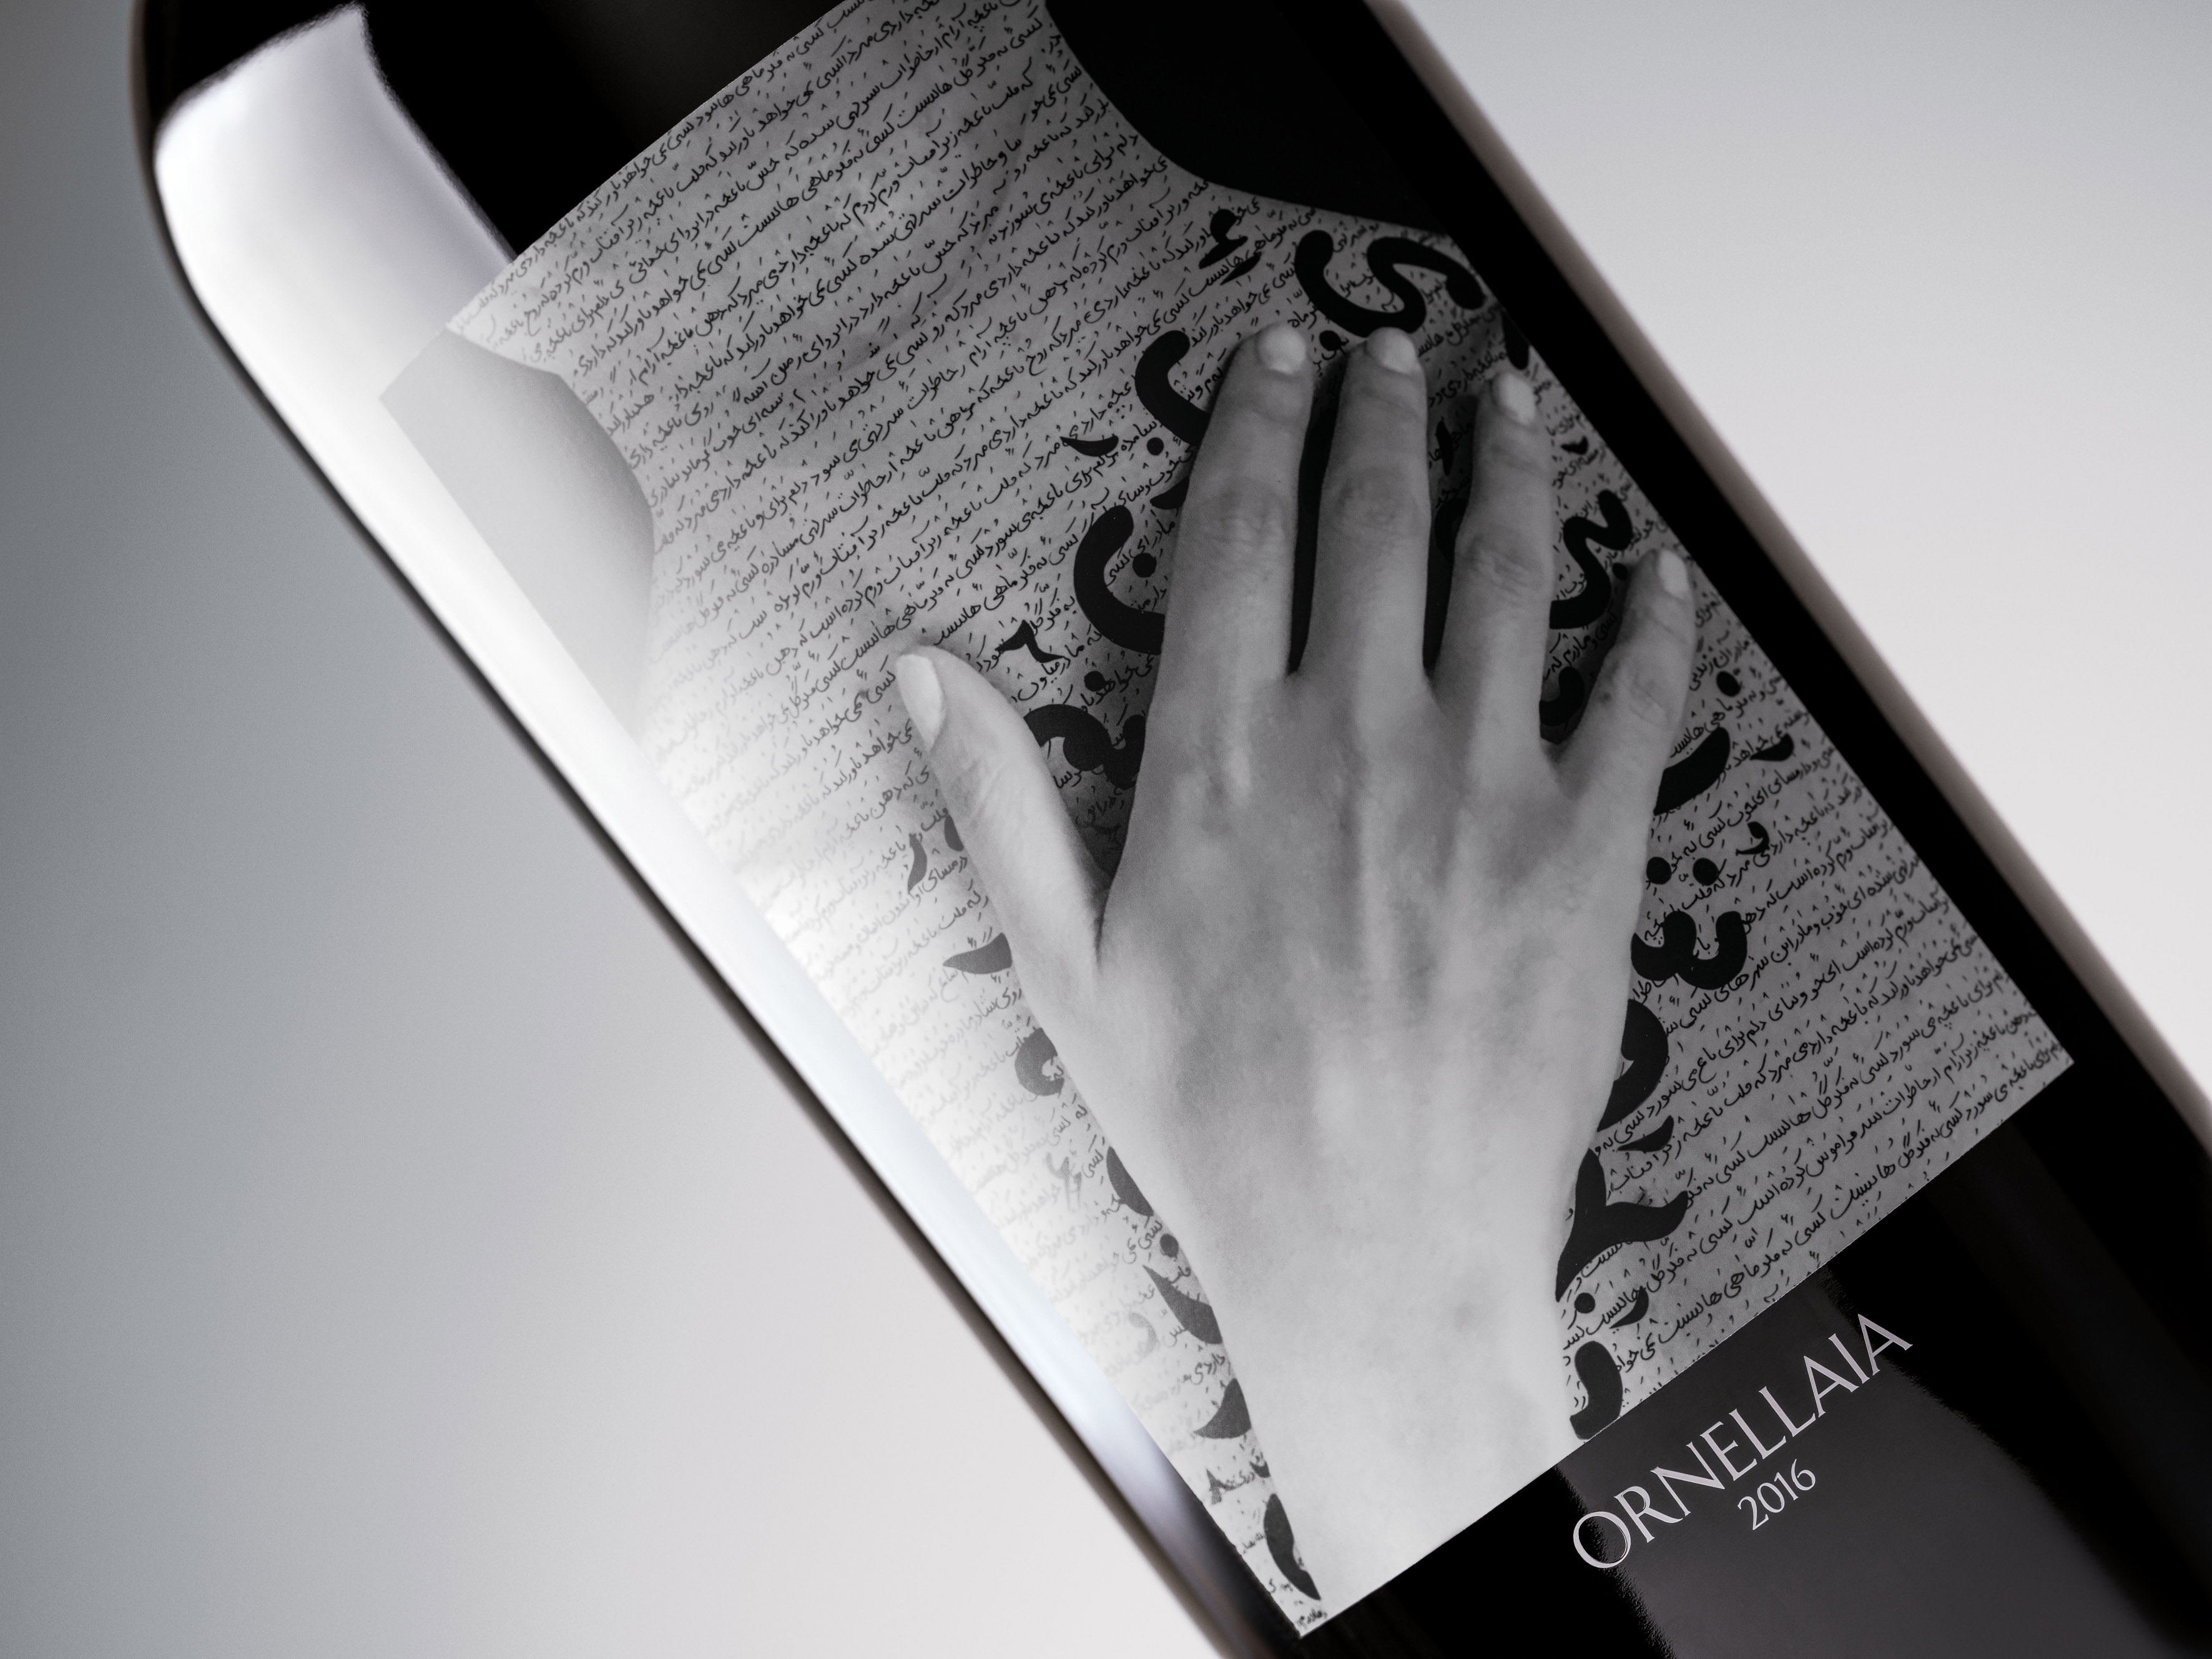 ORNELLAIA VENDEMMIA D'ARTISTA: ONLINE AUCTION OF SPECIAL BOTTLES DESIGNED BY SHIRIN NESHAT